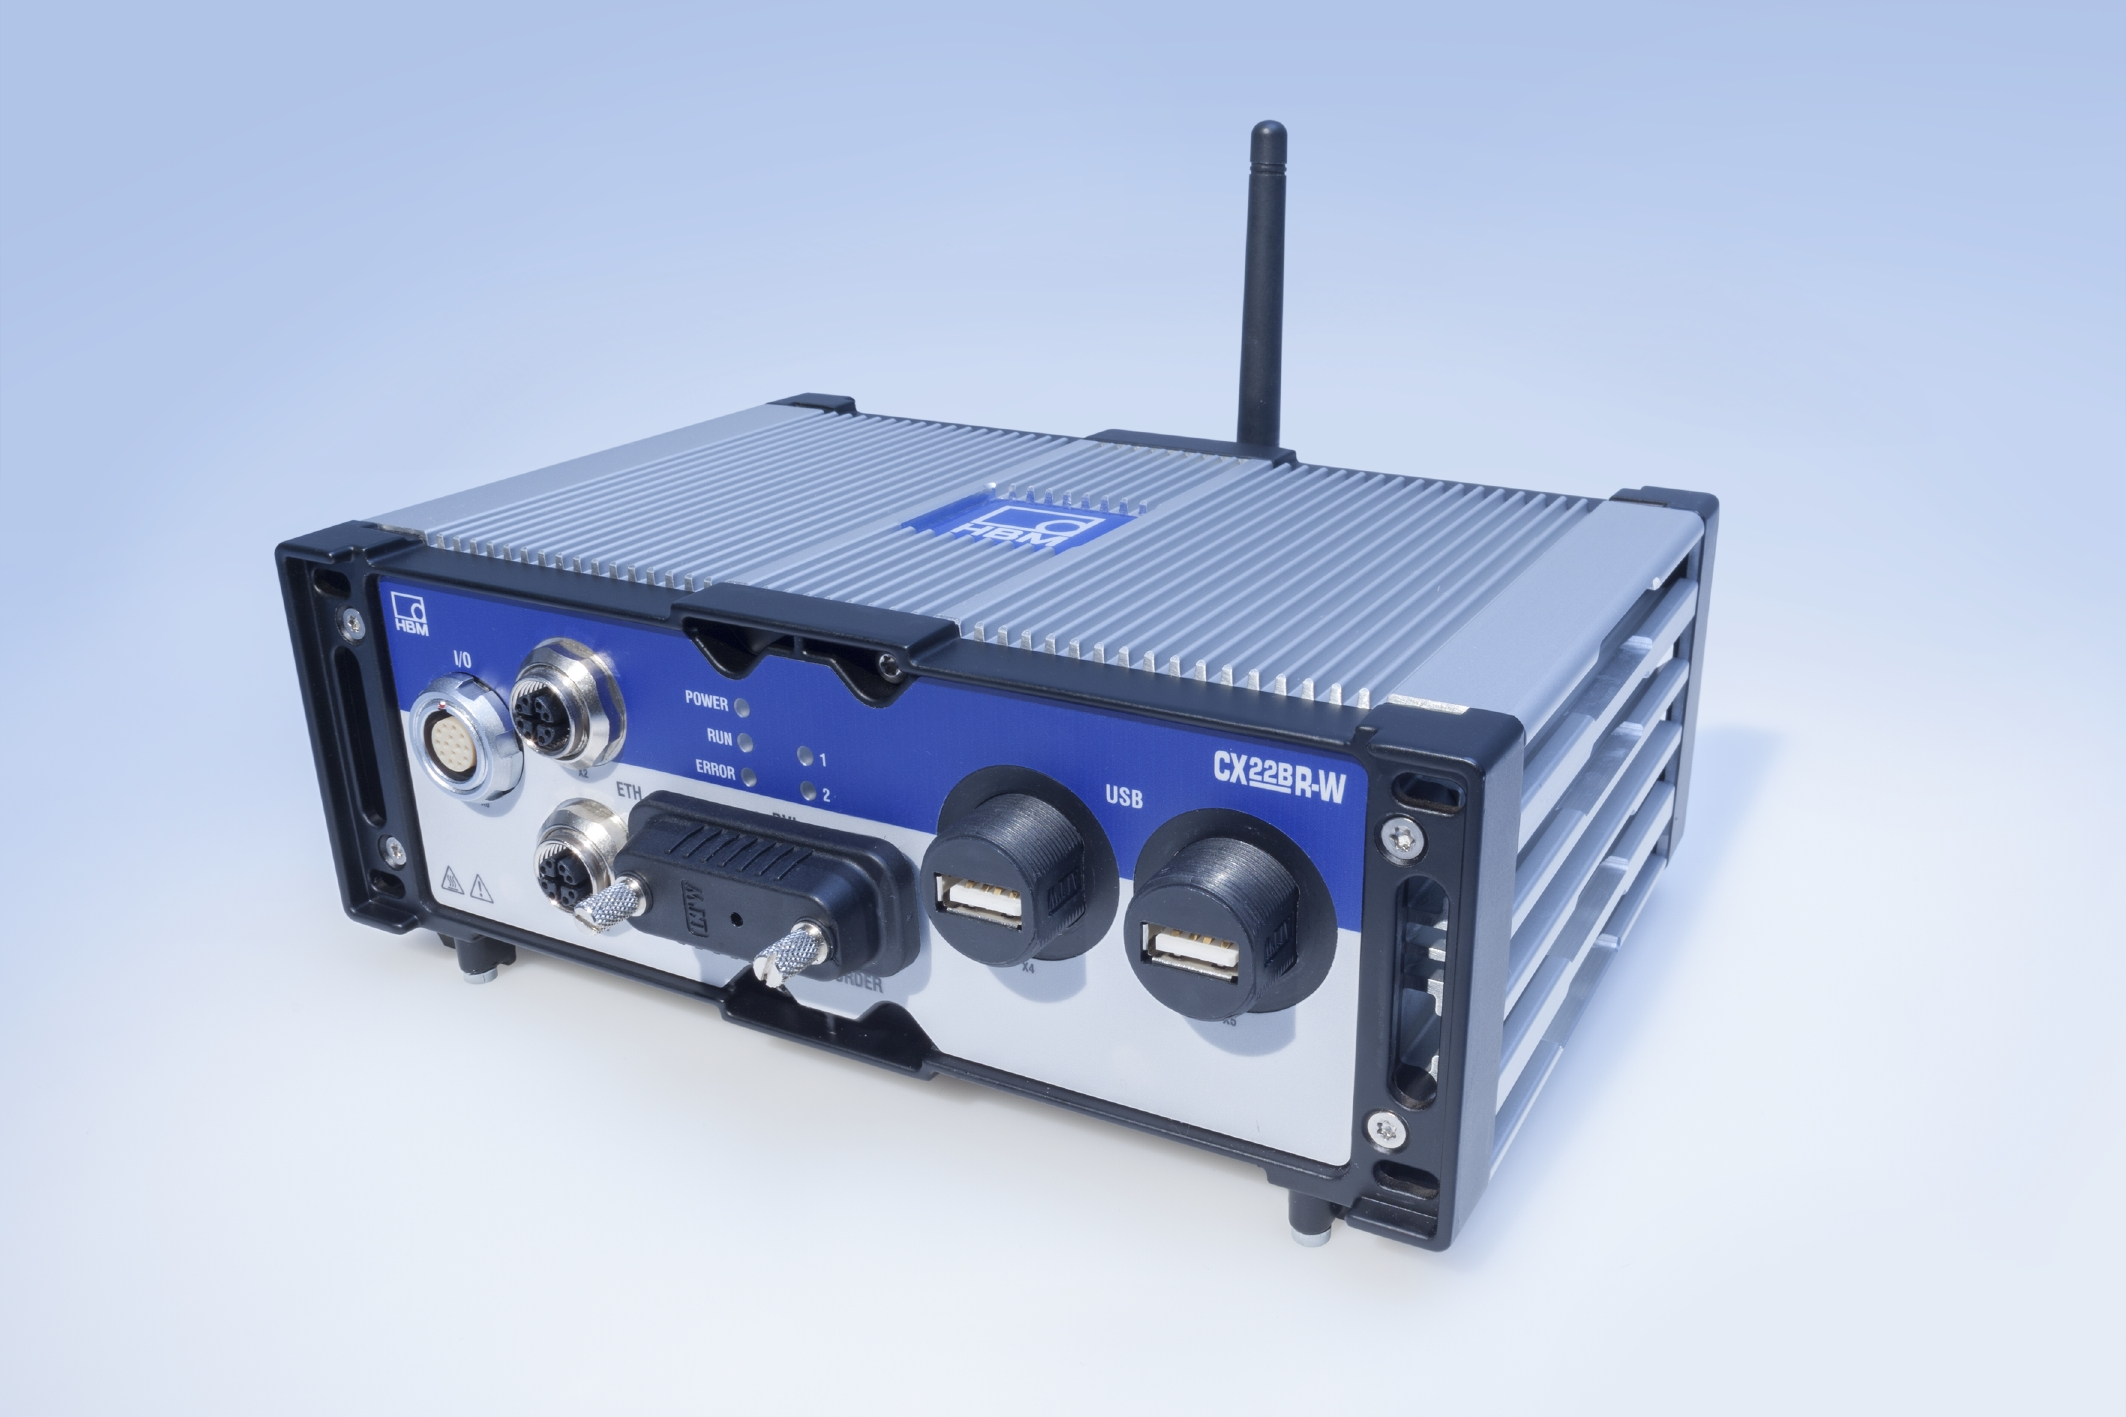 Rugged Data Recorder Provides Fast Results in Interactive Vehicle Testing